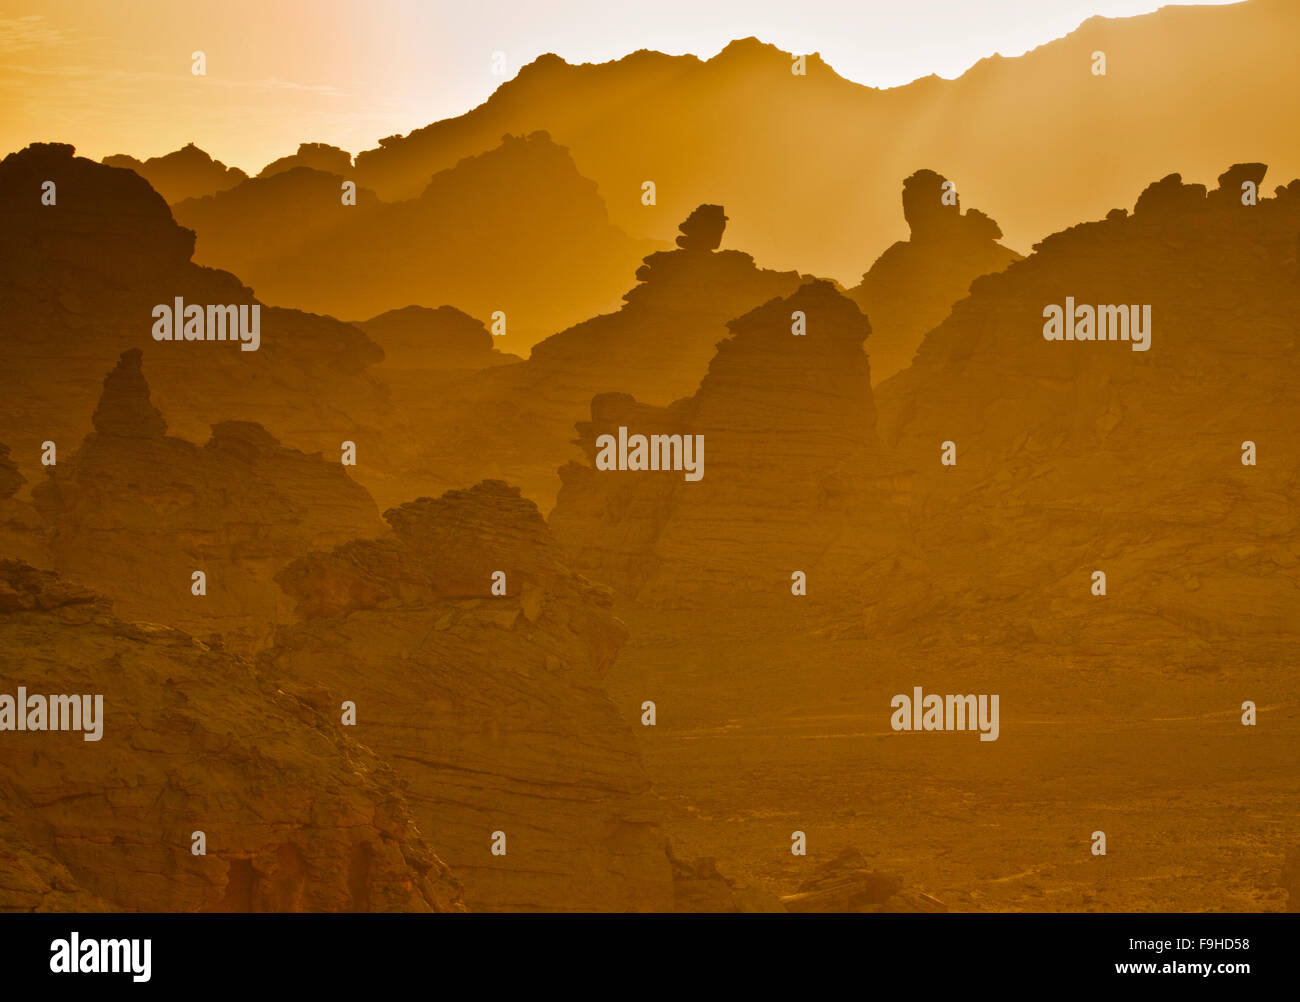 Sandstone mountains and pinancles, Jebel Acacus, LIbya, Mountains in Sahara Desert UNESCO World Heritage Site, The - Stock Image